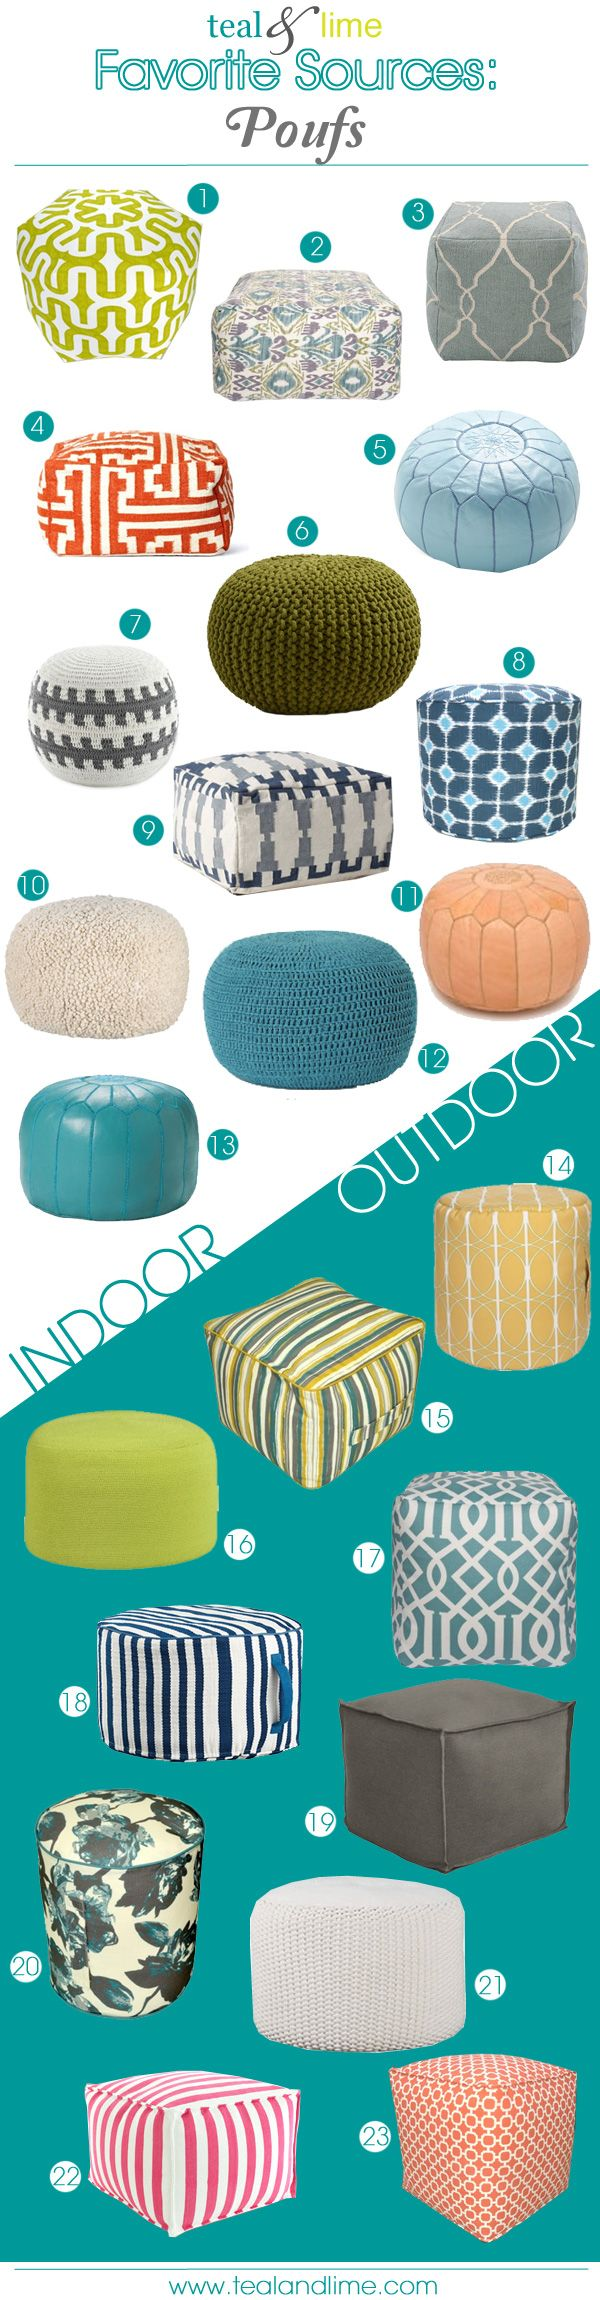 Poufs, poufs, everywhere! No really, they are everywhere. As they should be. Poufs are a foot stool, an extra seat, or a small ottoman. Poufs are an opportunity to layer in another texture, pattern...